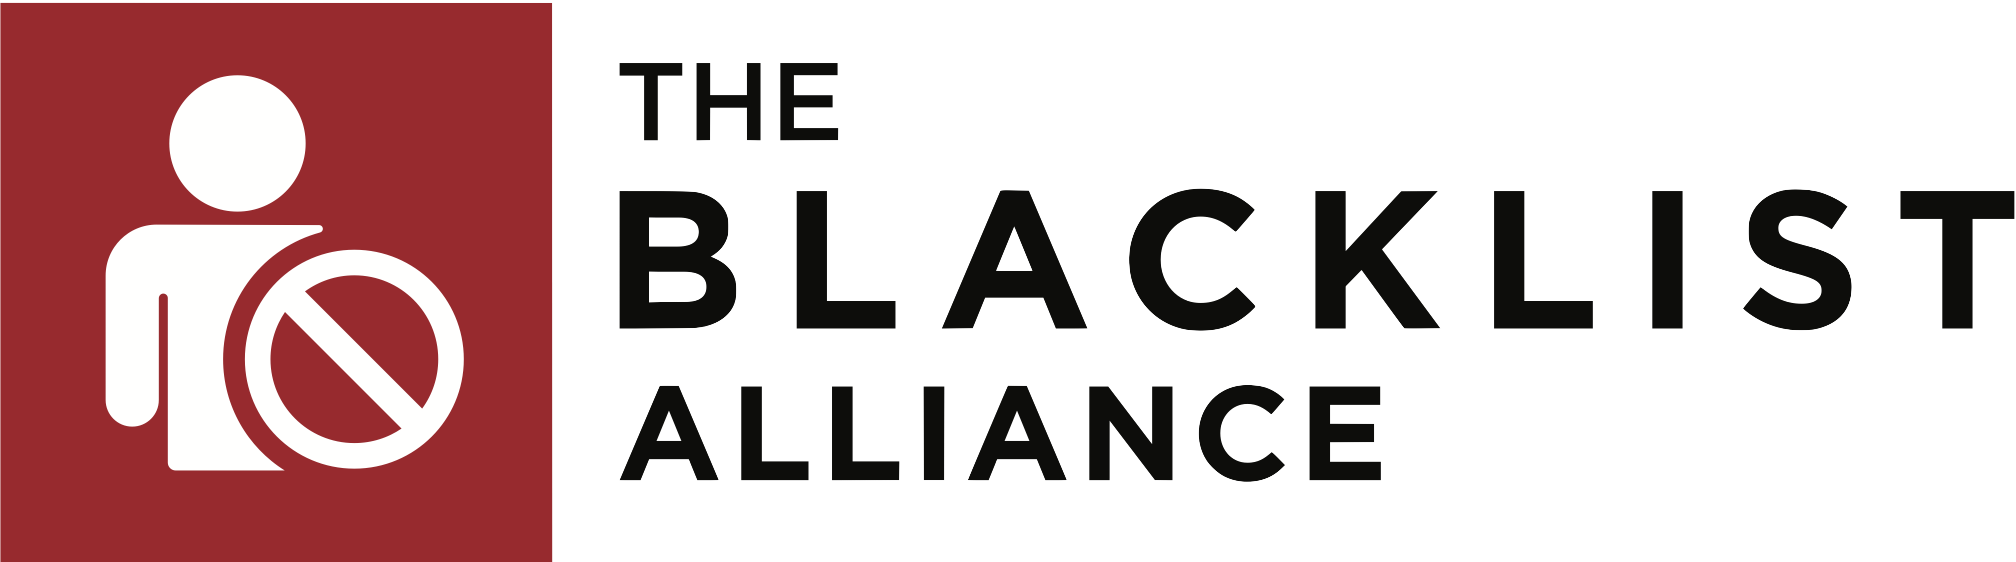 black list alliance teli